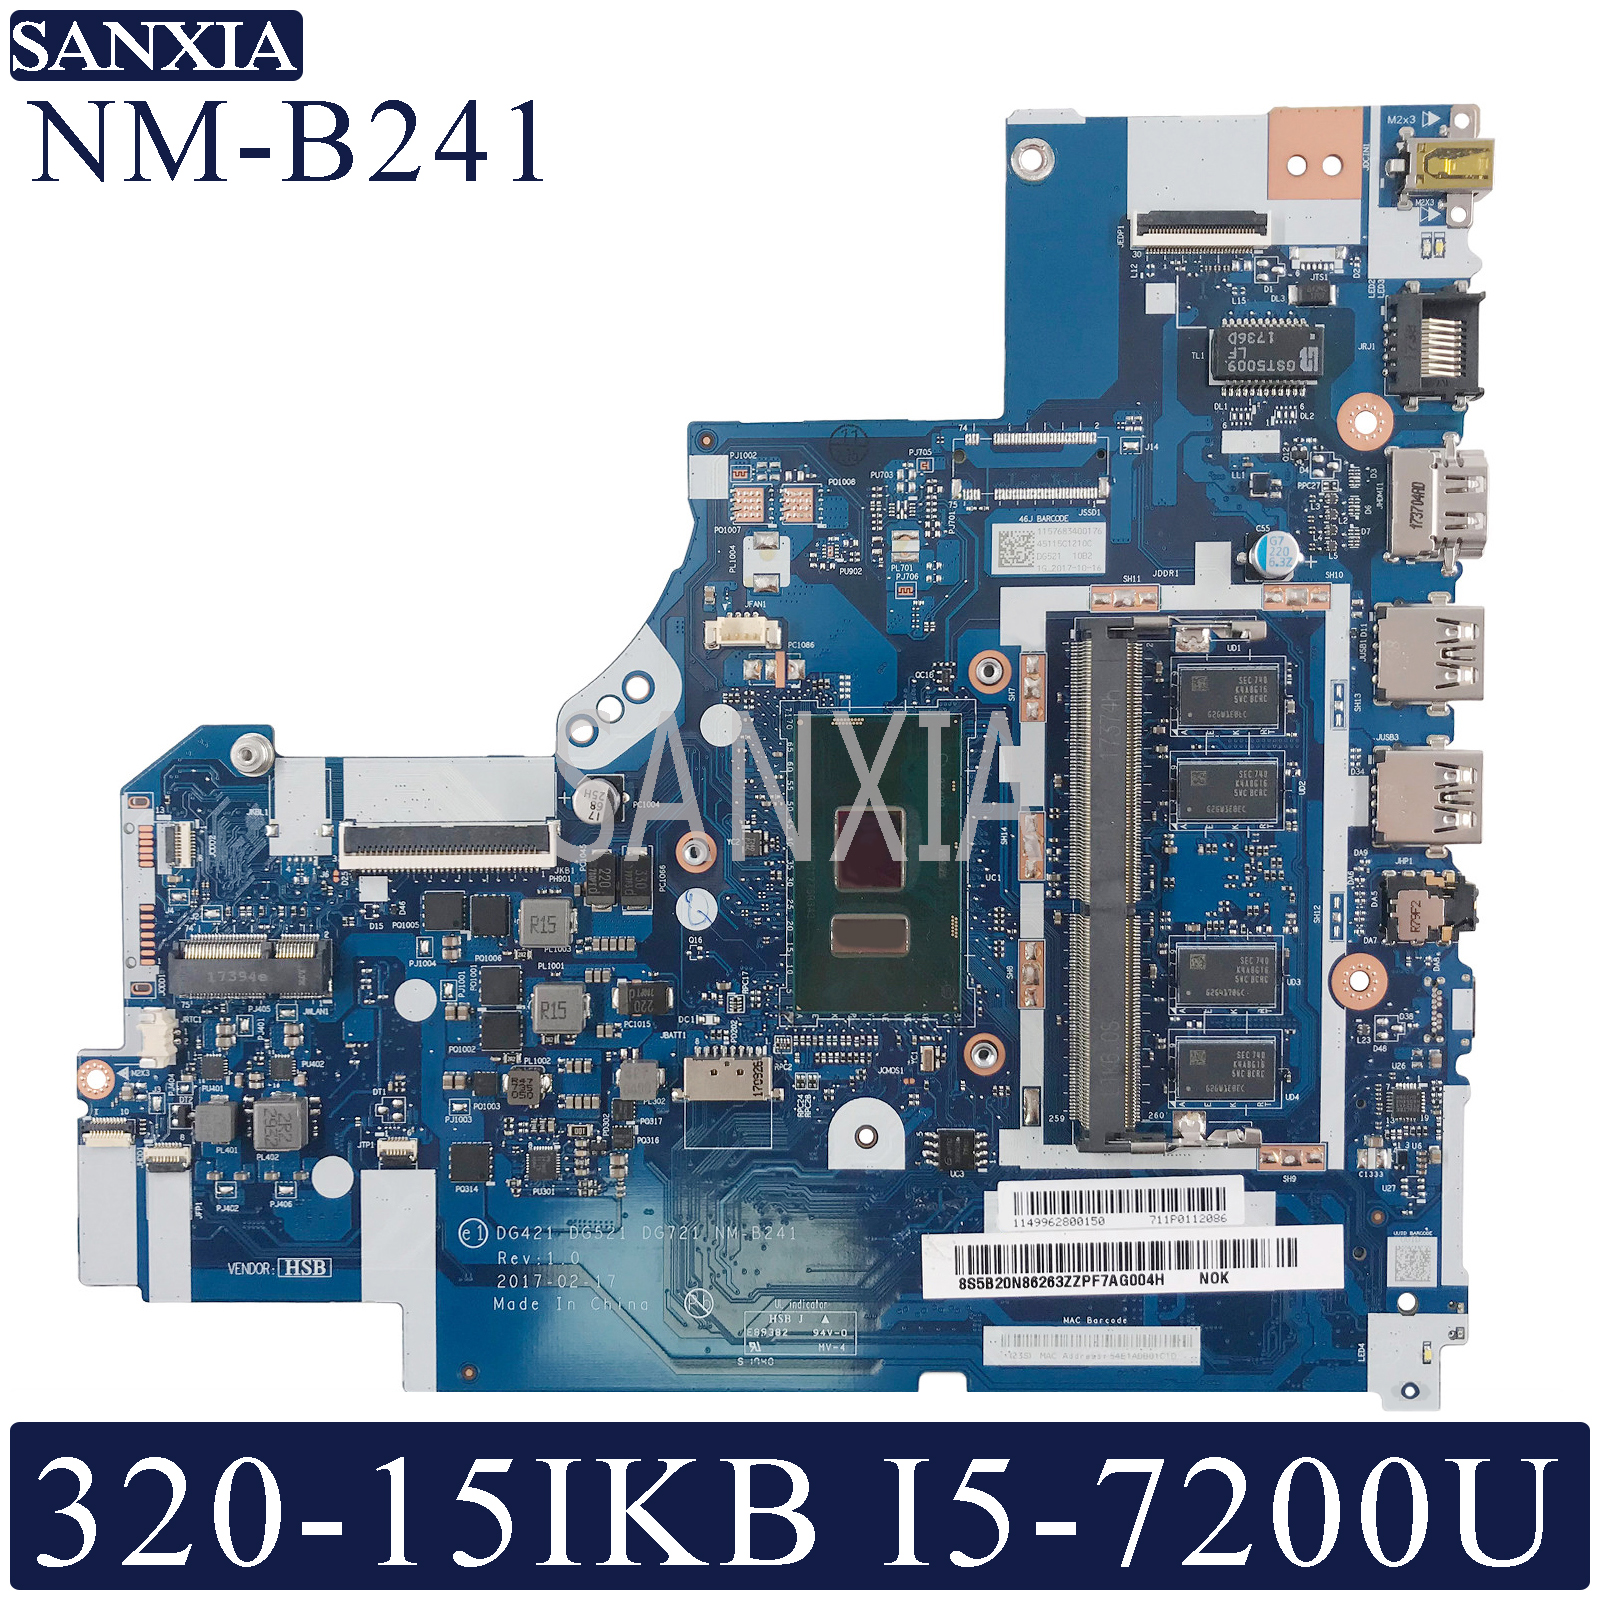 KEFU NM-B241 Laptop <font><b>motherboard</b></font> for <font><b>Lenovo</b></font> <font><b>Ideapad</b></font> <font><b>320</b></font>-15IKB original mainboard 4GB-RAM I5-7200U image